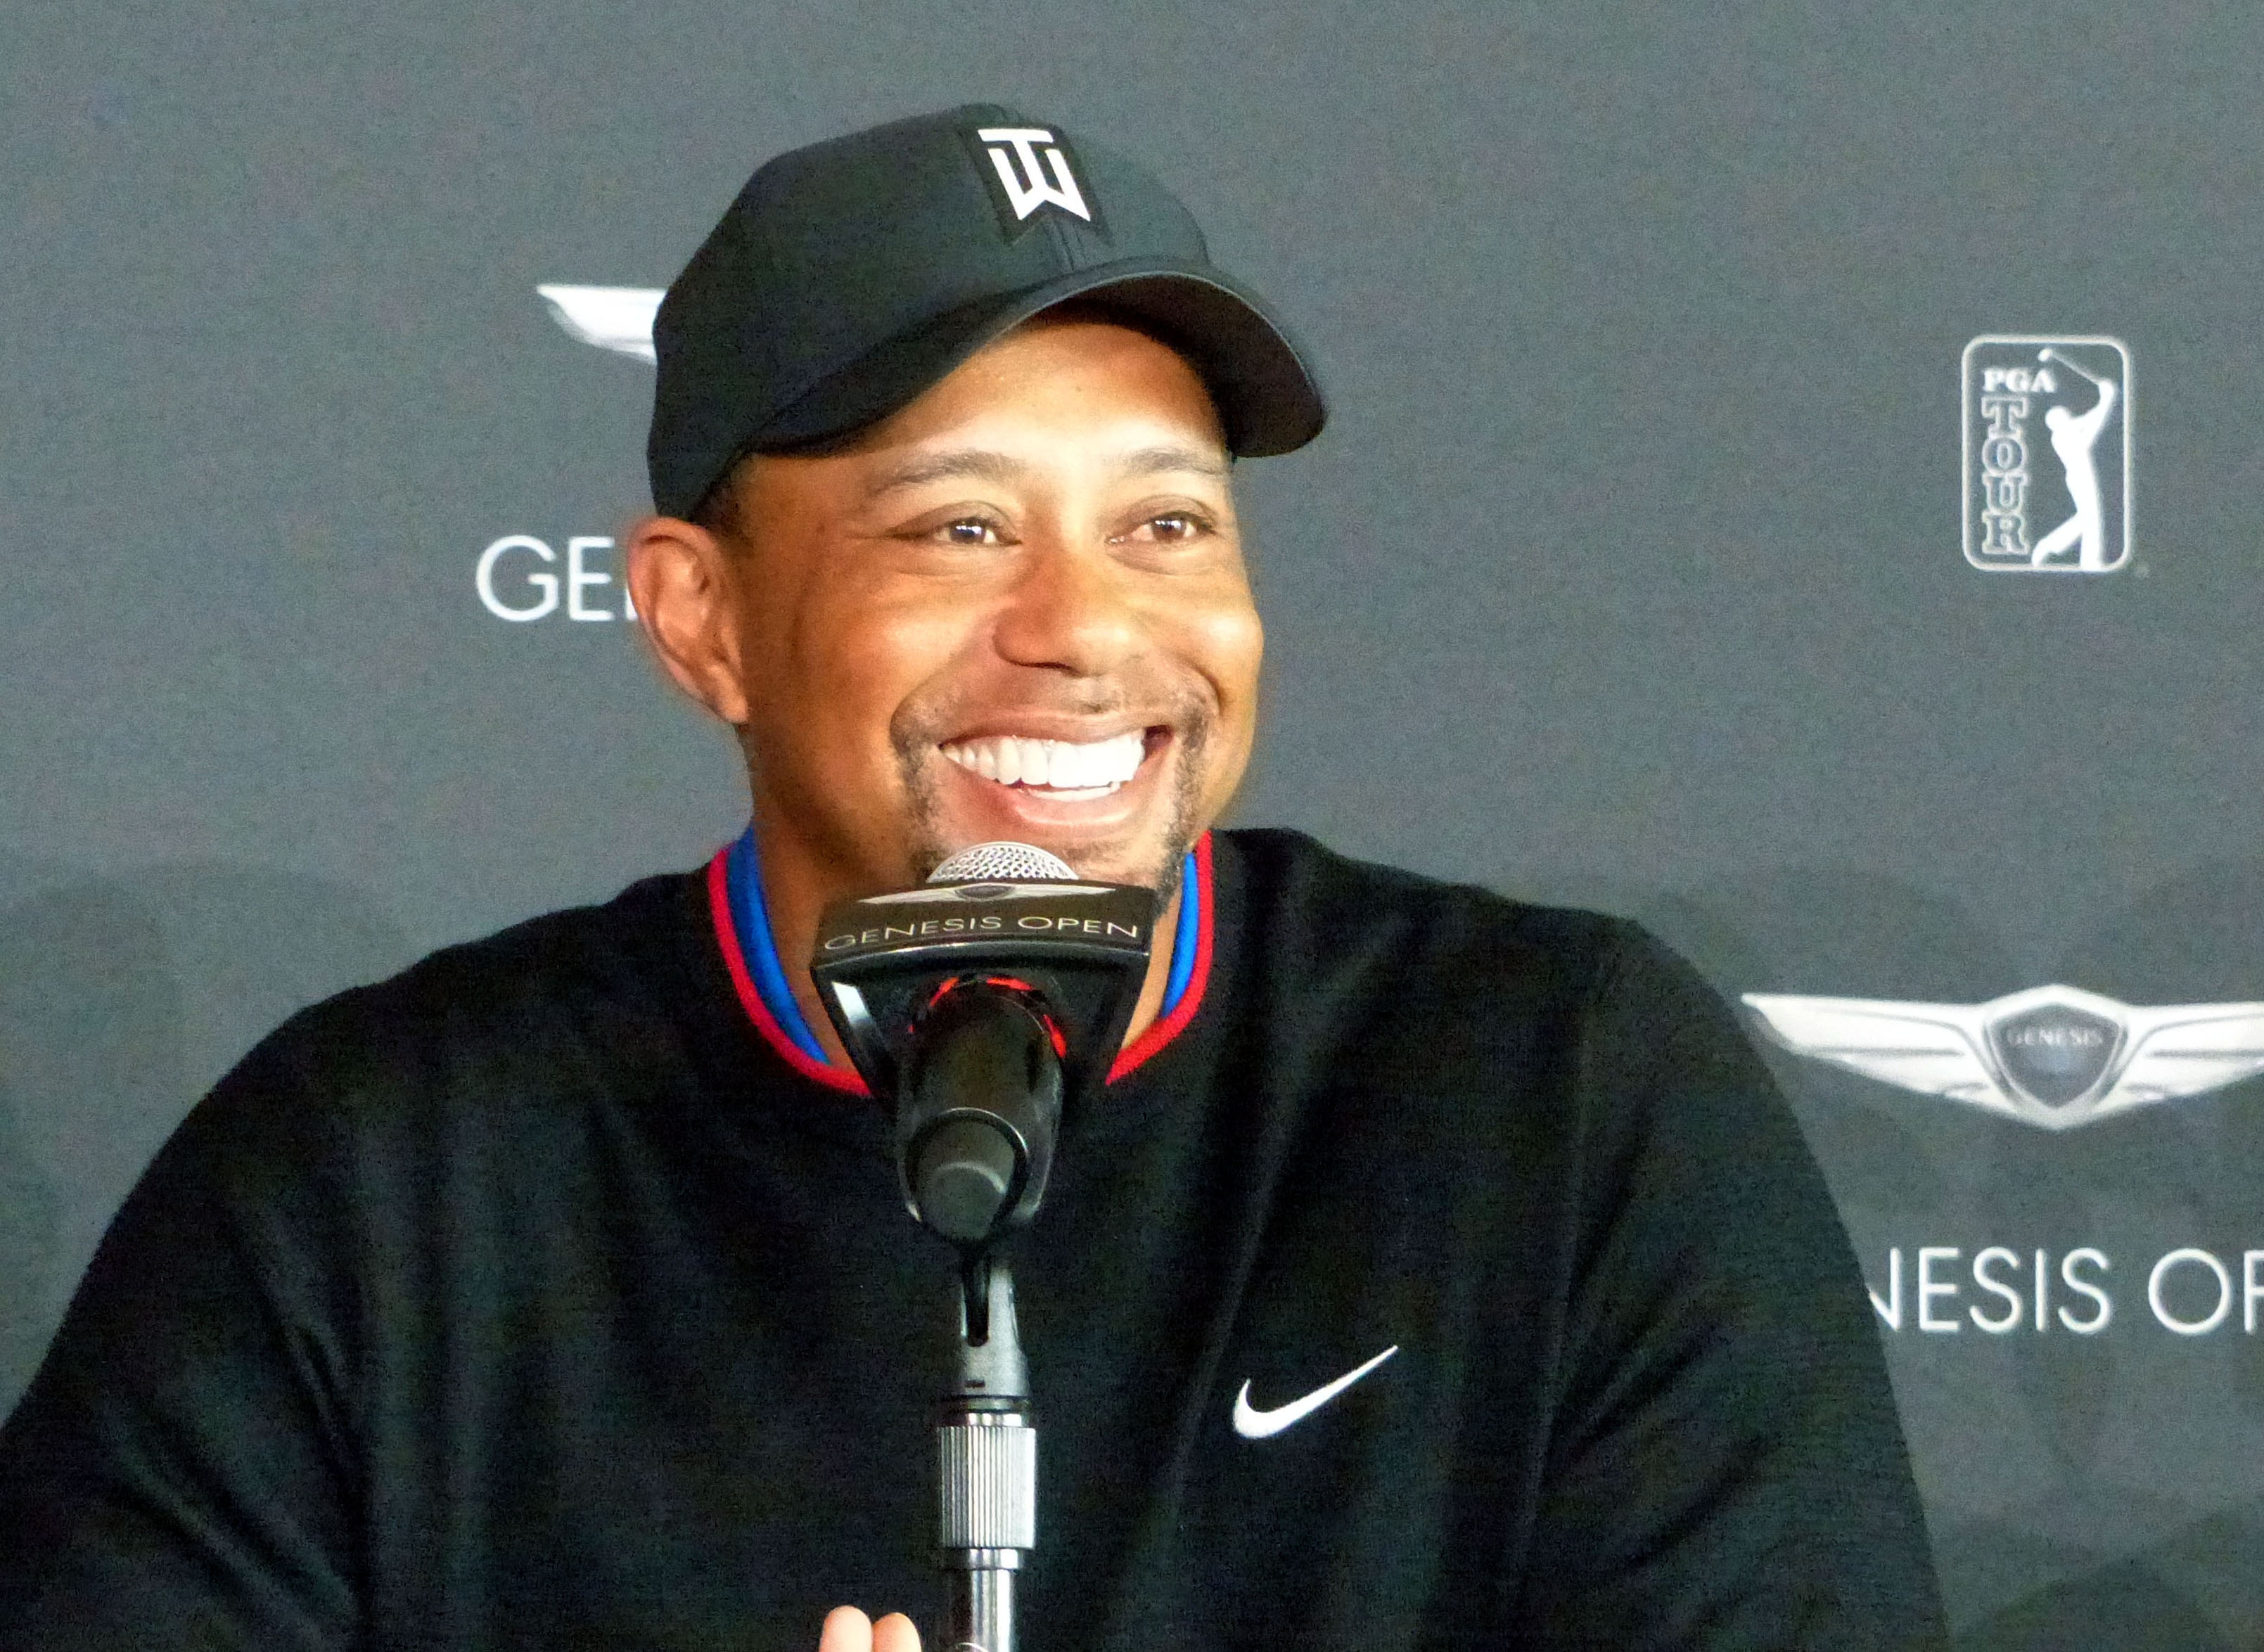 Tiger Woods speaks to the media ahead of the Farmers Insurance Open, his first professional tournament since 2015.